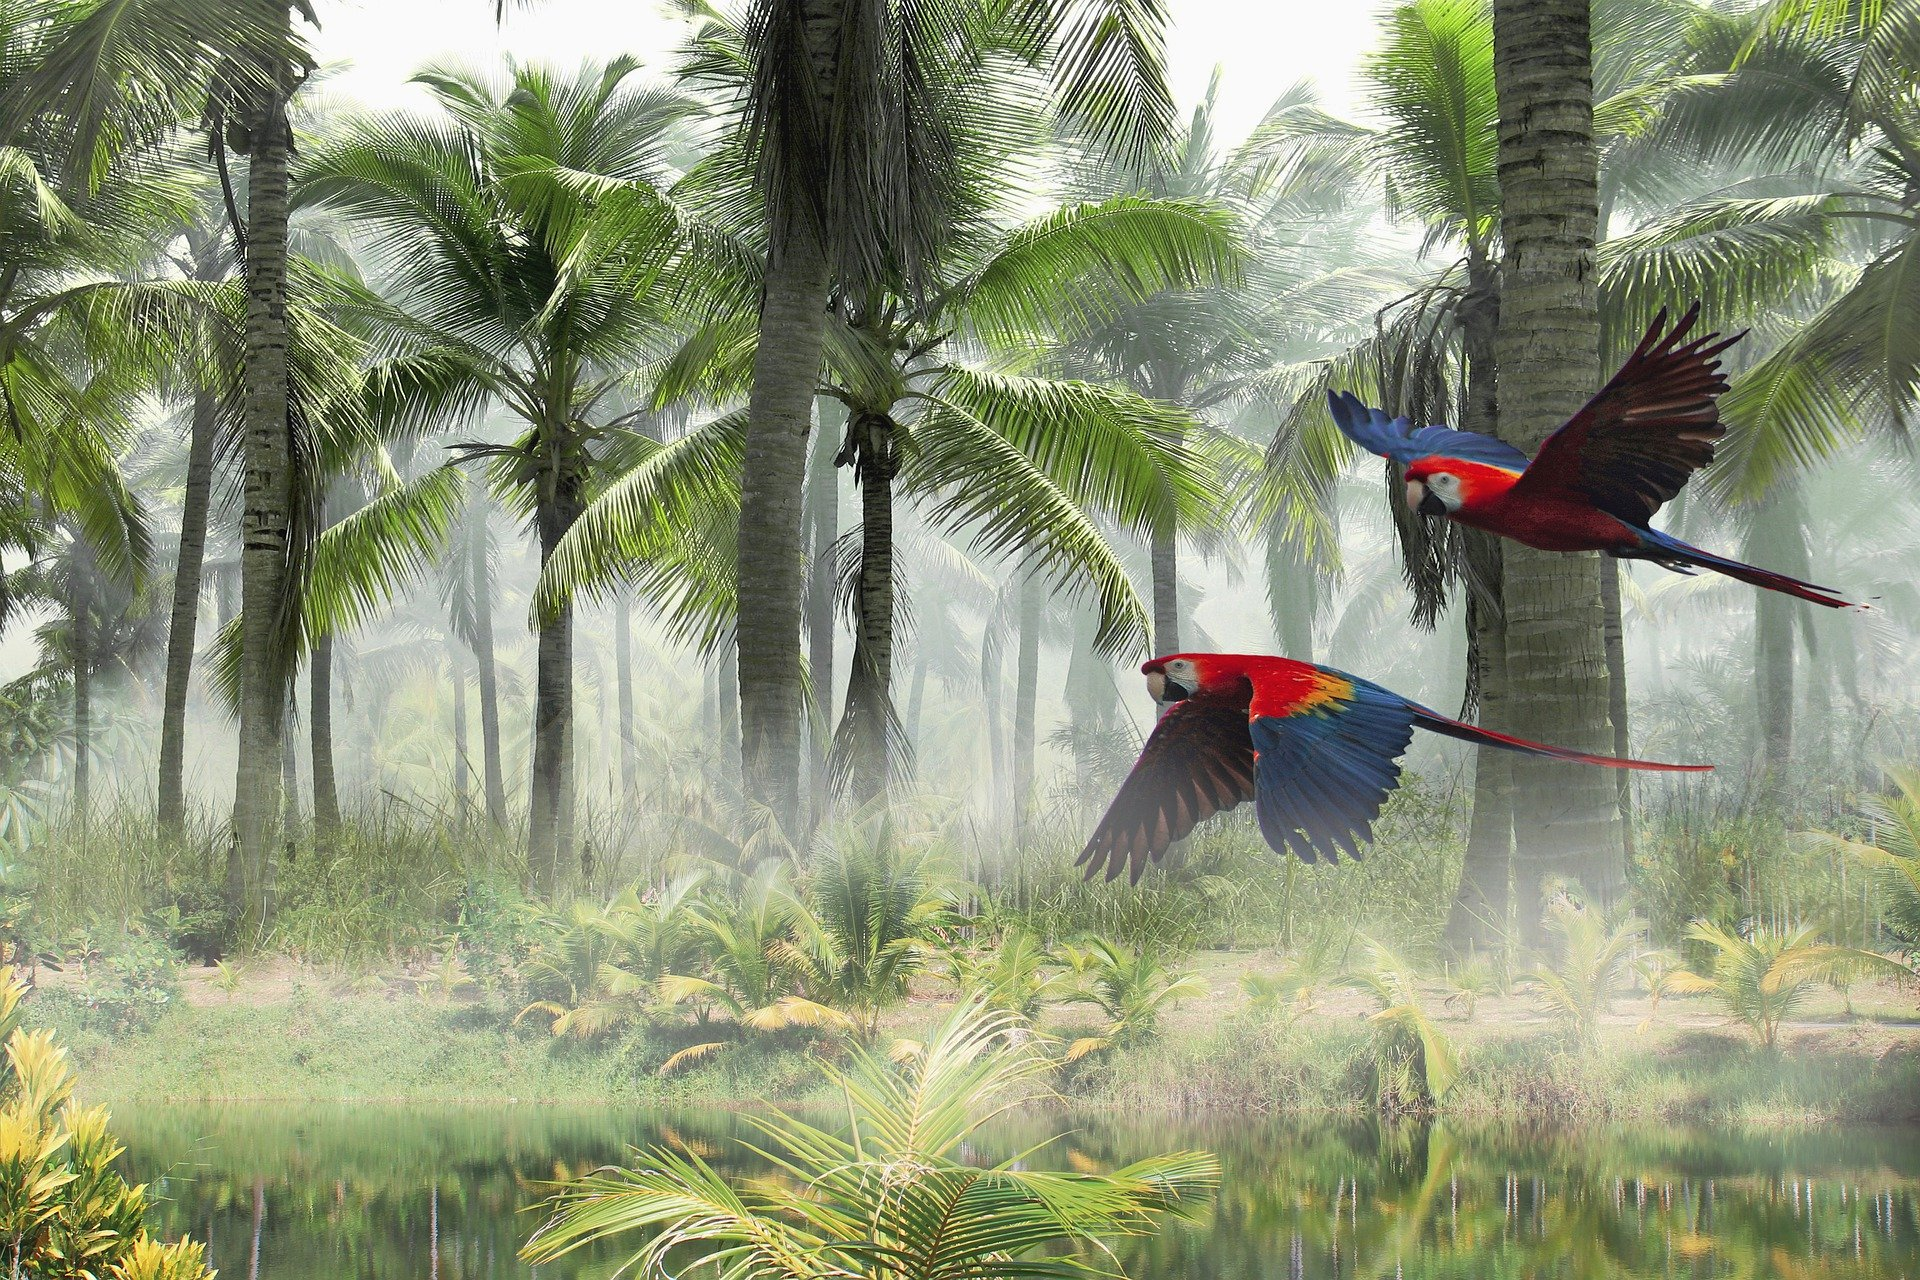 parrots flying 1920x1280 - Free image bank